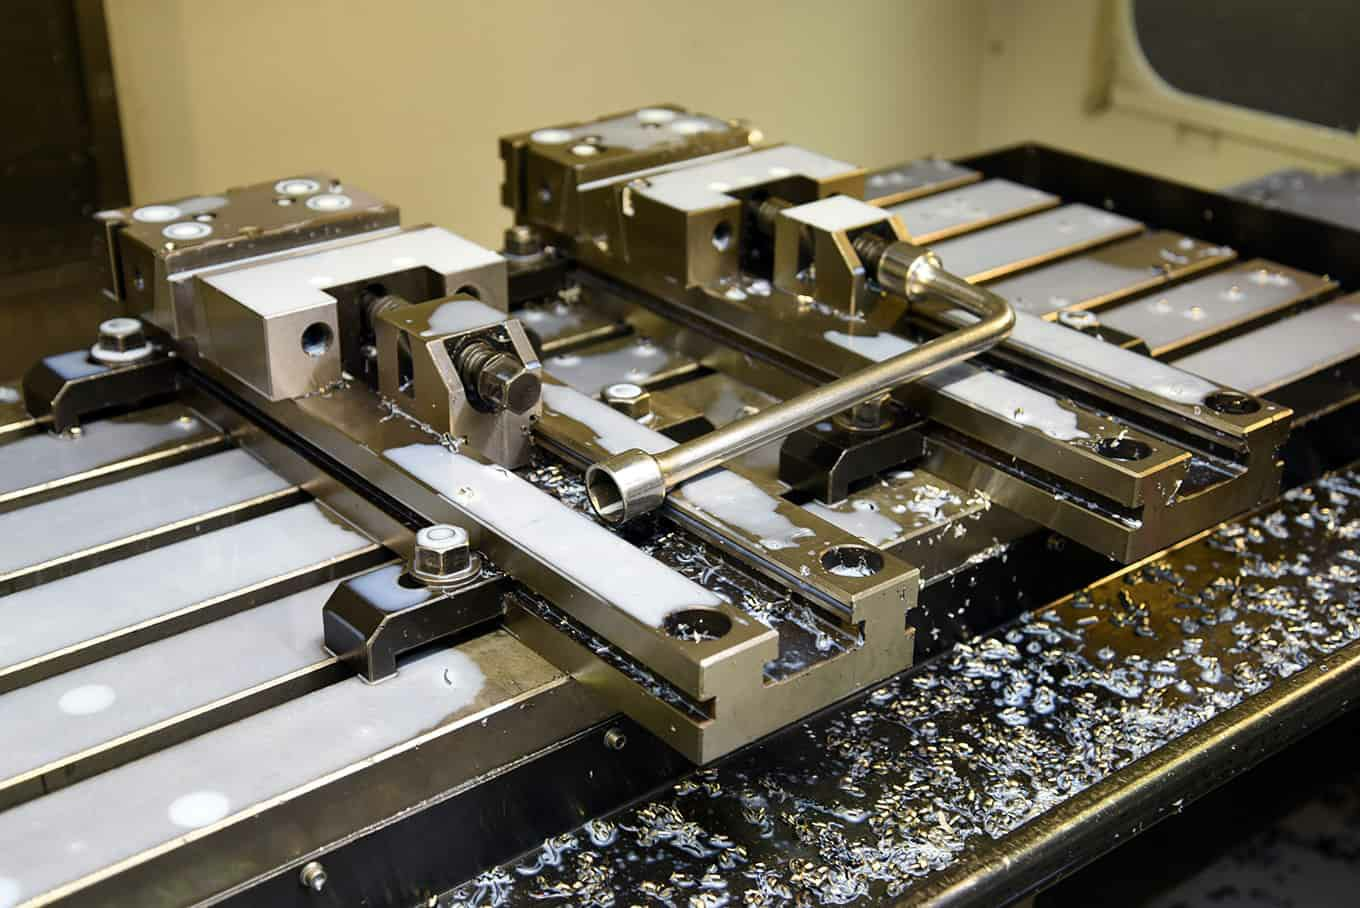 Photograph of a CNC Plate in use